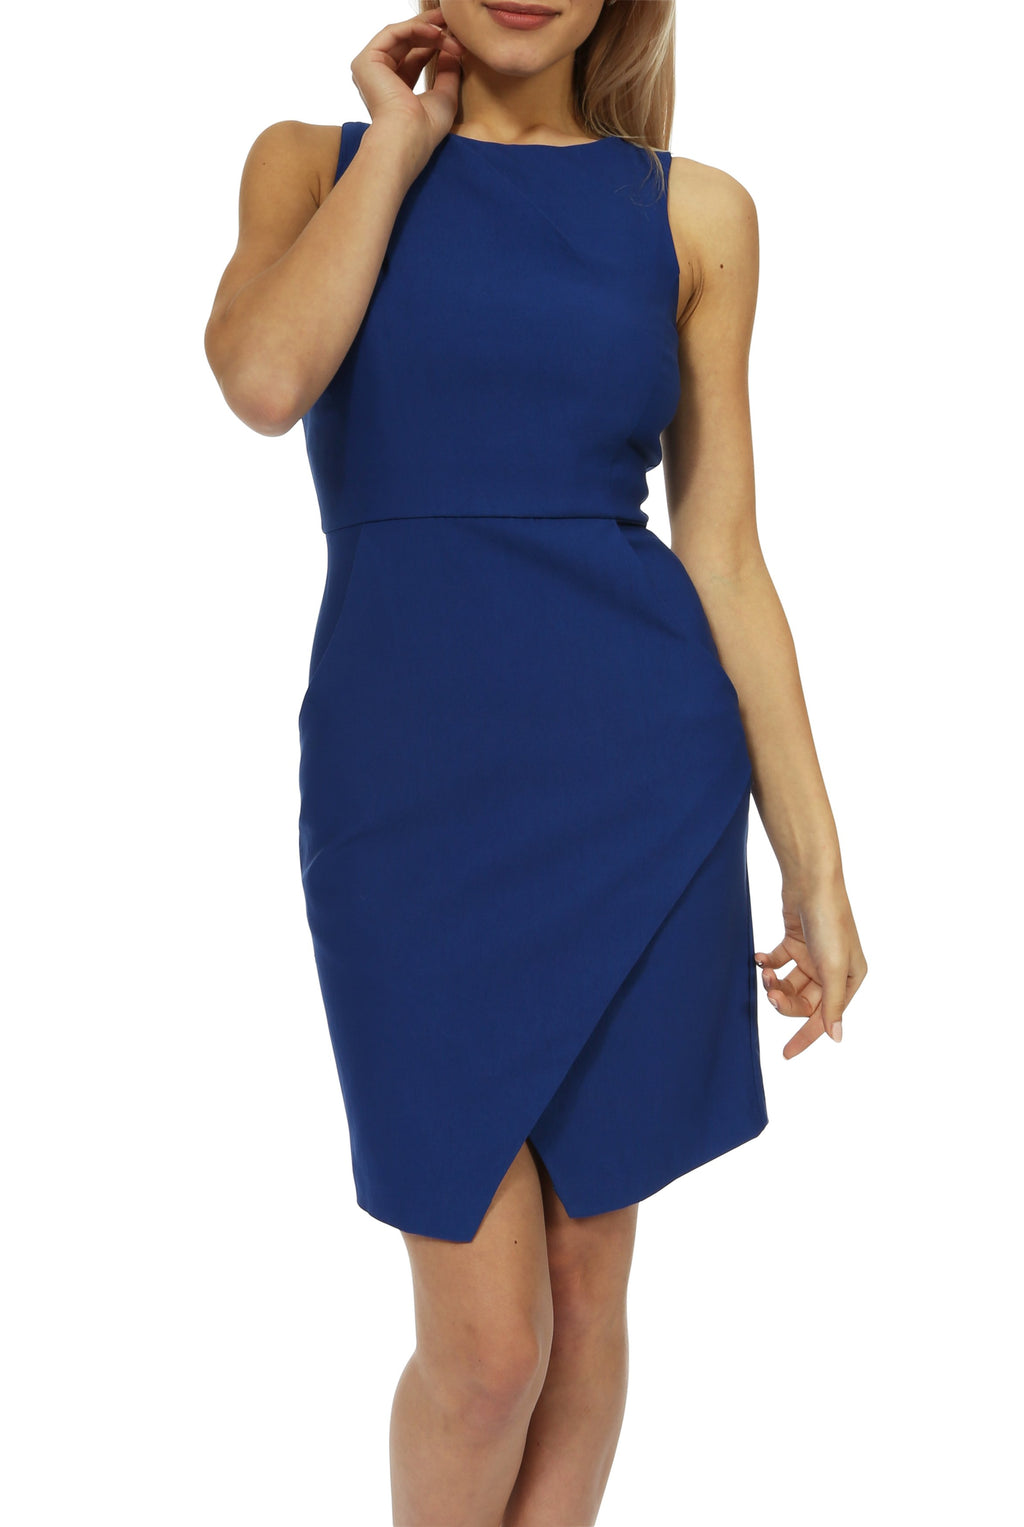 Teeze Me | Sleeveless Round Neck Shoulder Pleated Sheath Dress With Pockets | Royal | Teeze Me Juniors Apparel